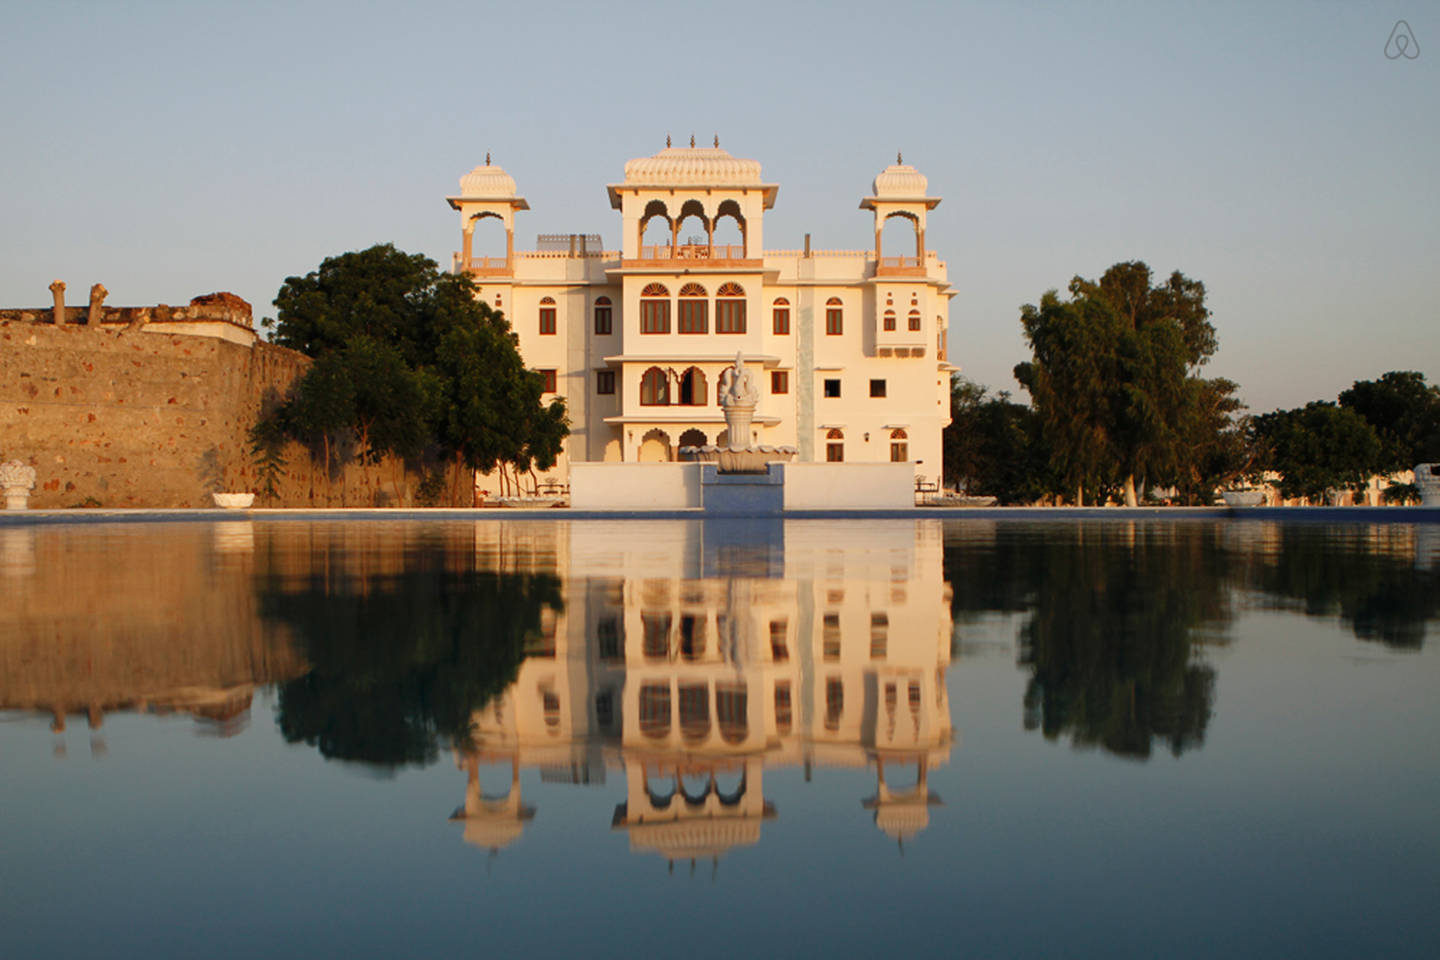 Luxury Castle in Rajasthan, India